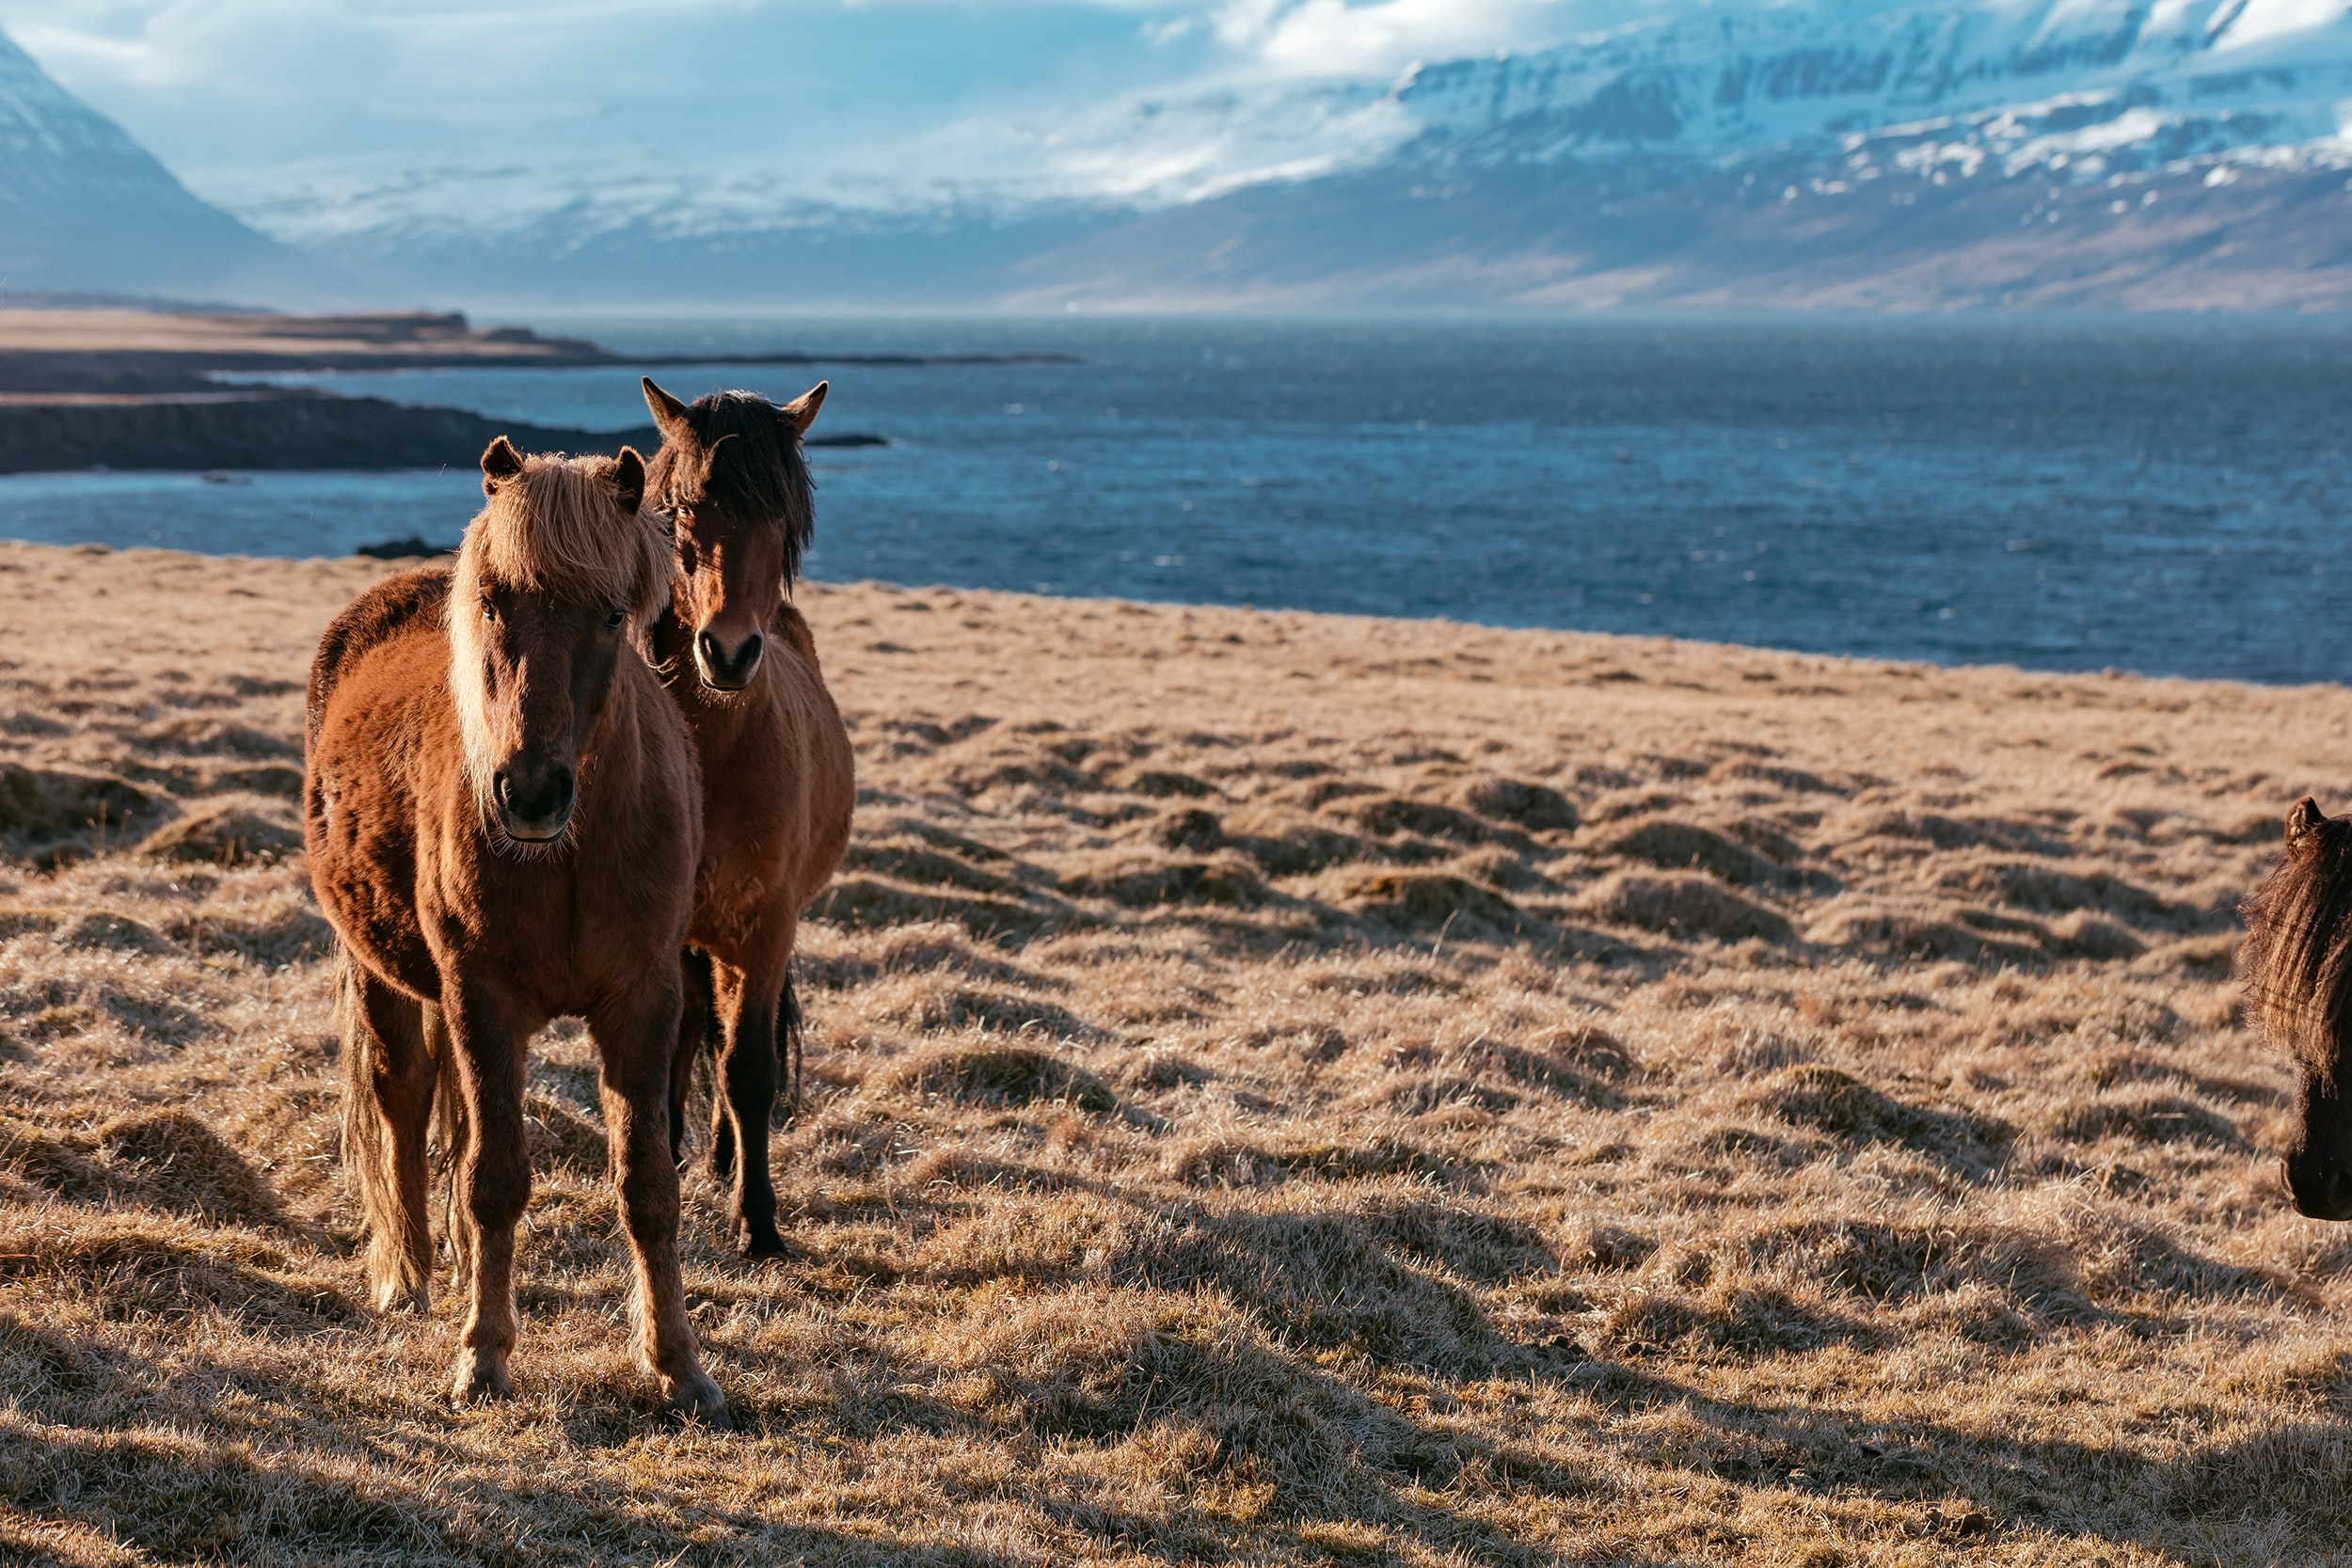 two horses near body of water